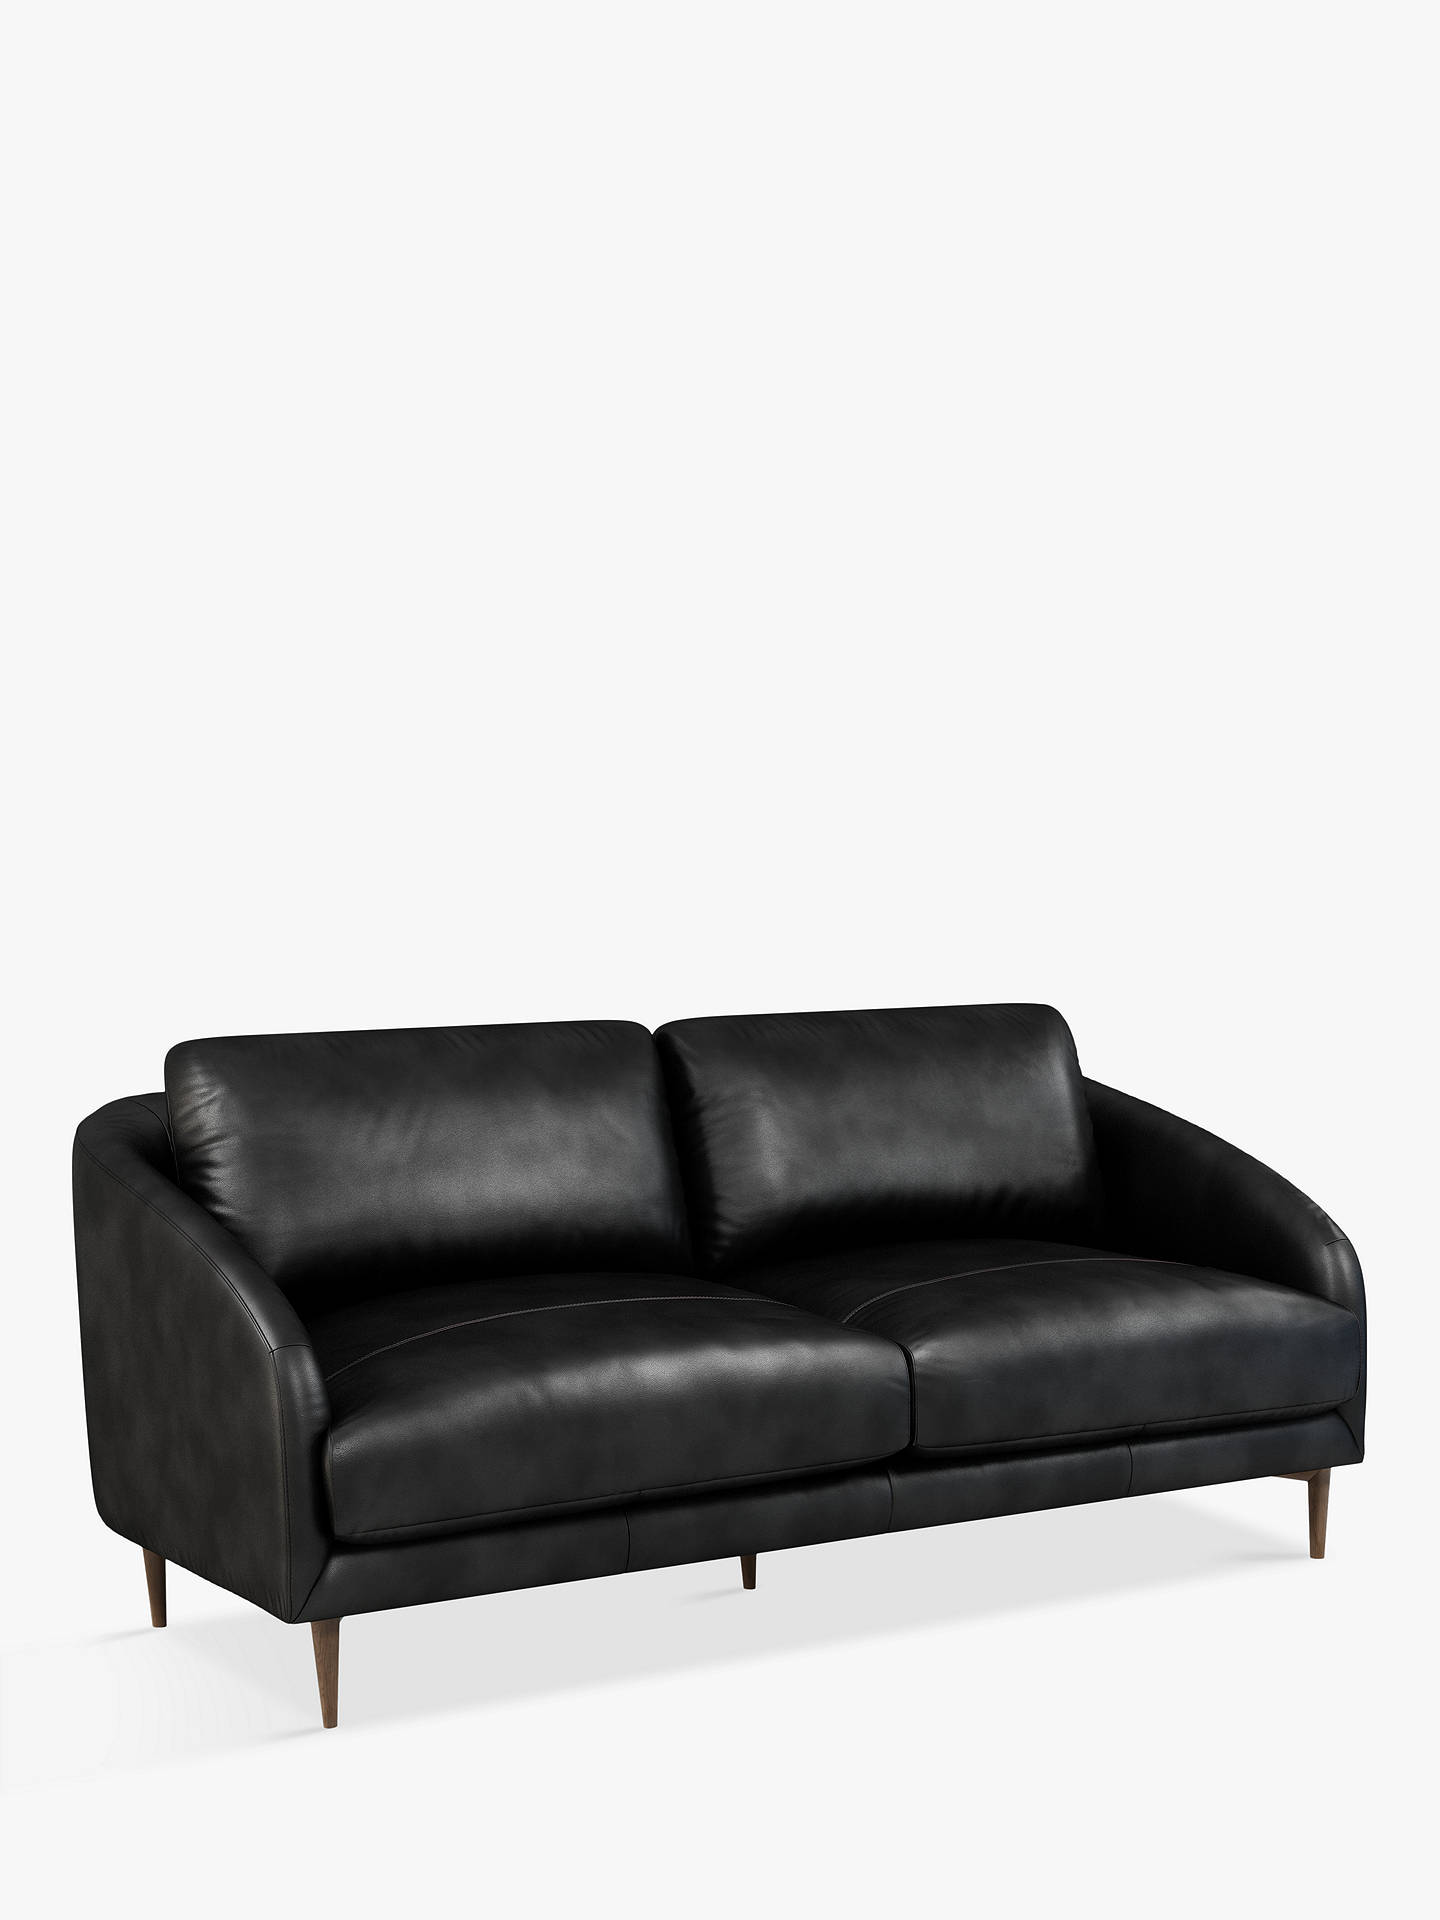 John Lewis & Partners Cape Large 3 Seater Leather Sofa, Dark Leg, Contempo  Black